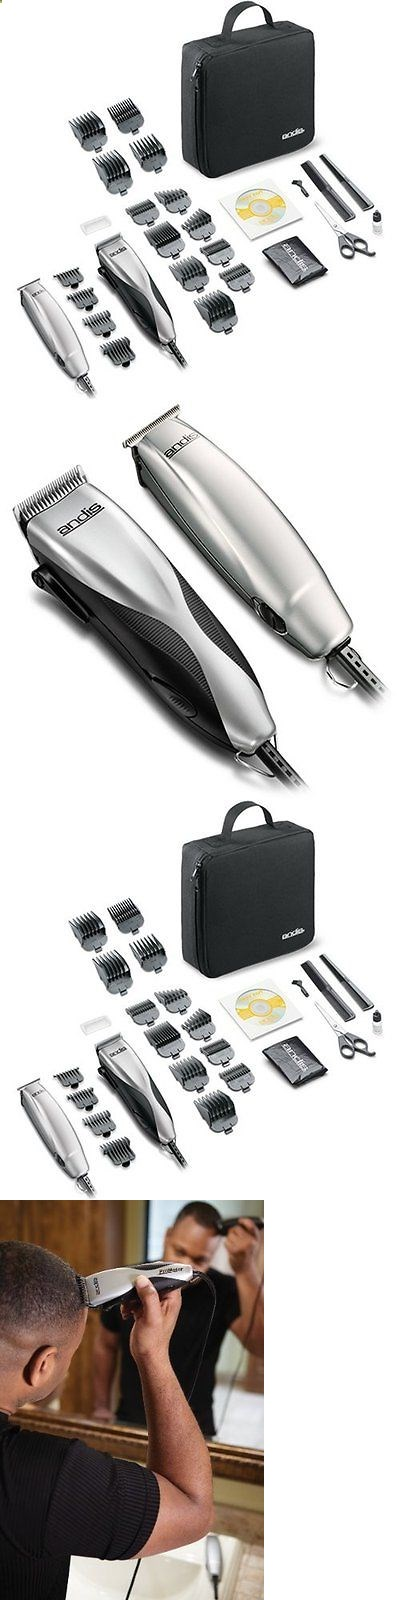 Clippers And Trimmers Andis 29115 Promotor Hair Clipper Trimmer Combo 27 Piece Kit